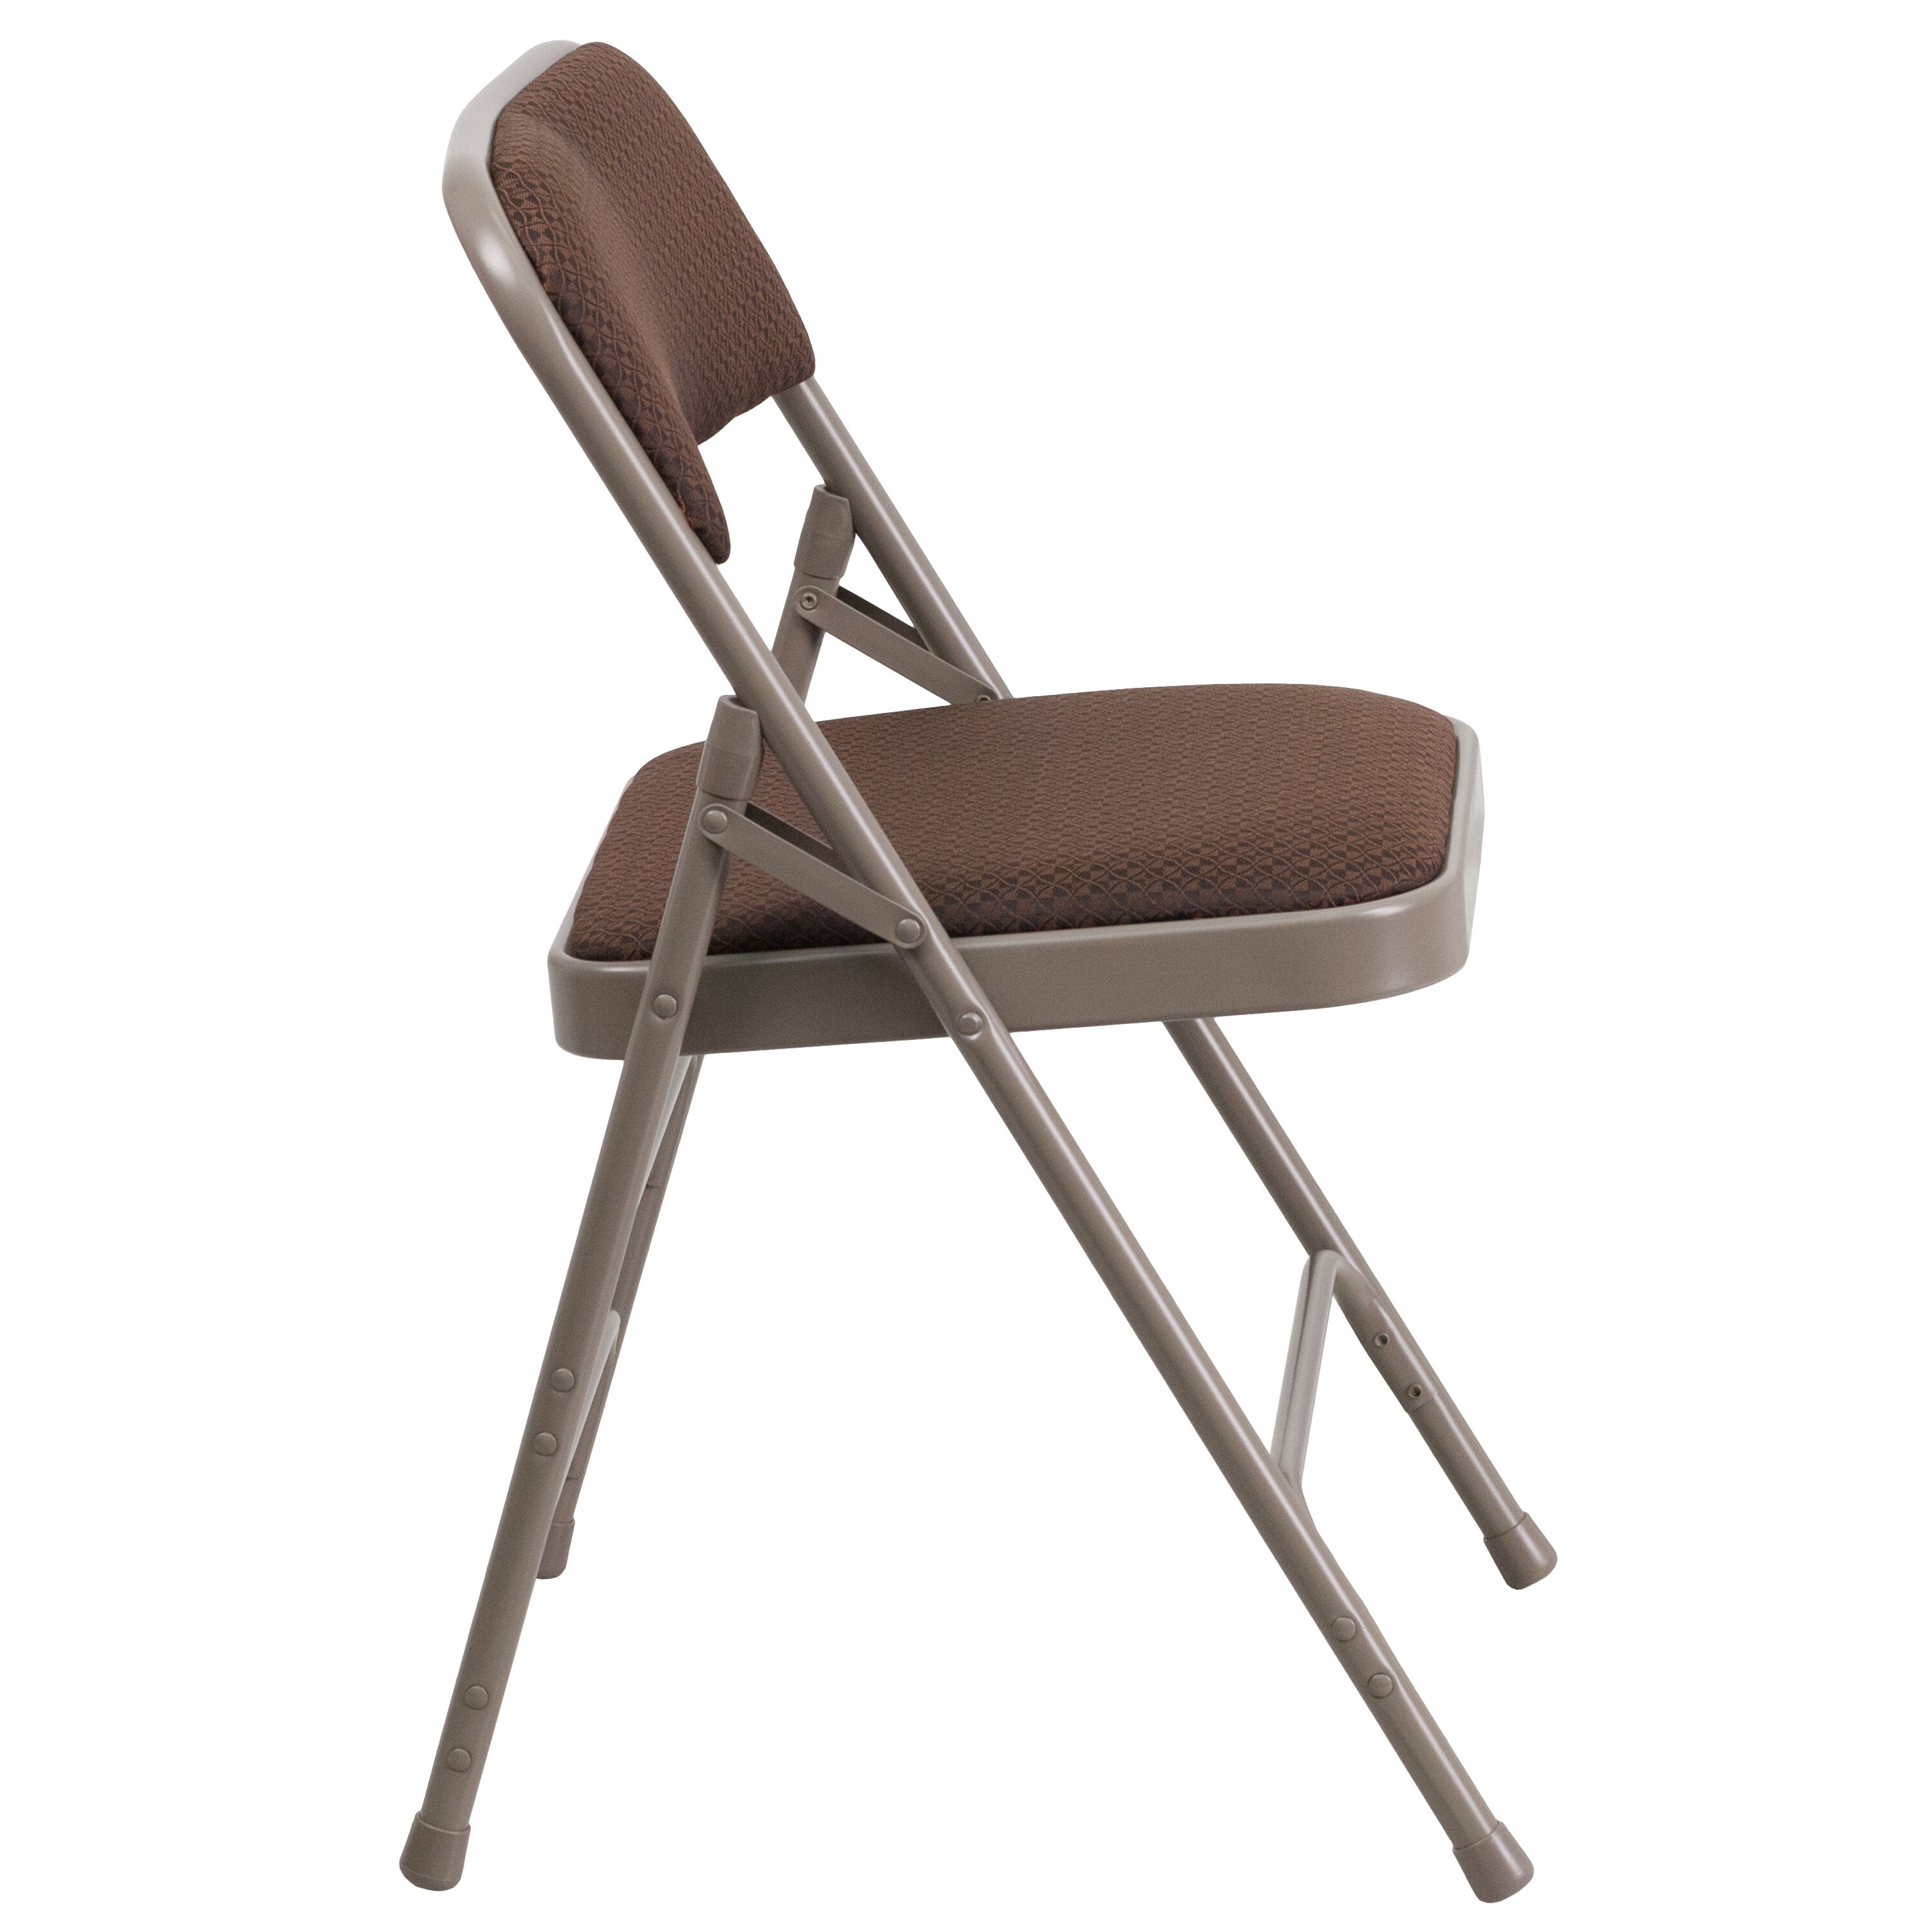 ... Our HERCULES Series Curved Triple Braced u0026 Double-Hinged Brown Patterned Fabric Metal Folding Chair ...  sc 1 st  Folding Chairs 4 Less & Brown Fabric Metal Chair AW-MC309AF-BRN-GG | FoldingChairs4Less.com